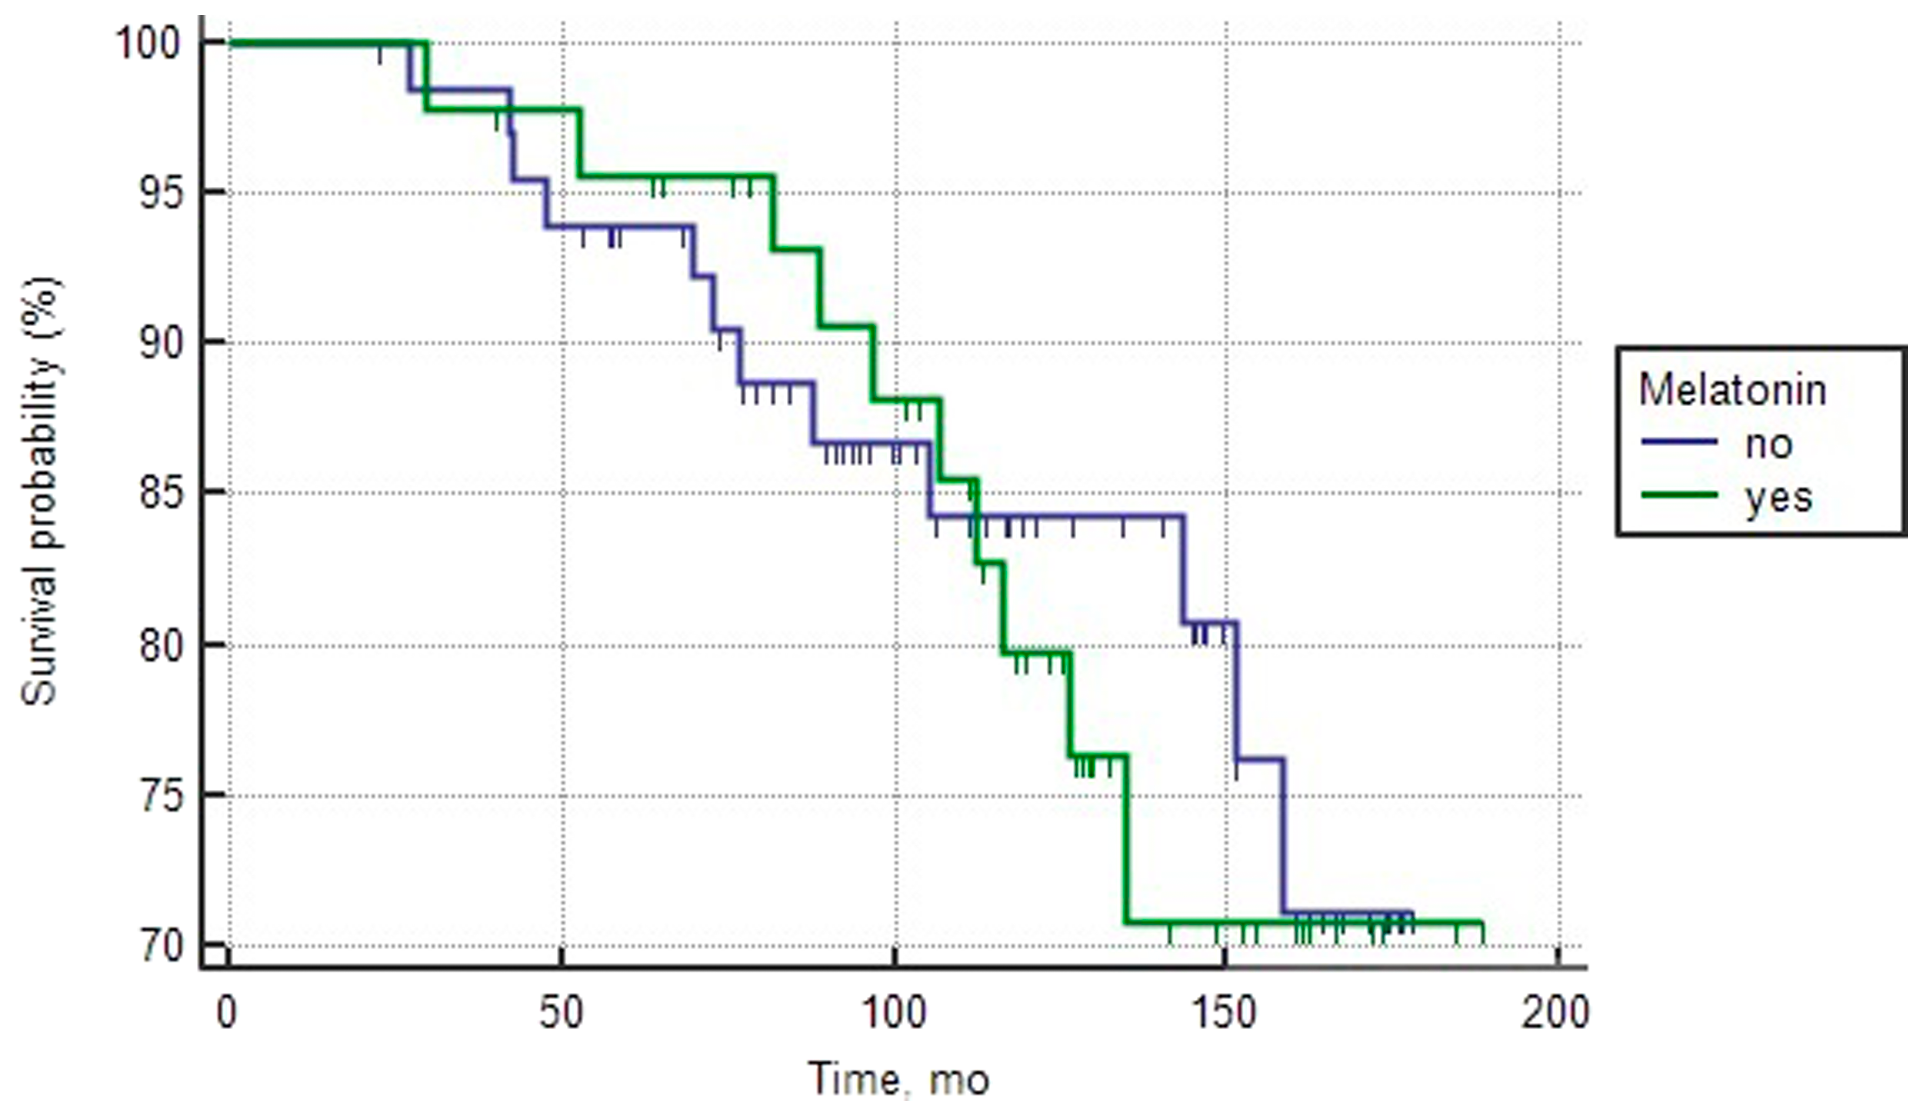 Overall survival curves of patients with good prognosis PCa depending on the intake of melatonin (log rank test > 0.05).